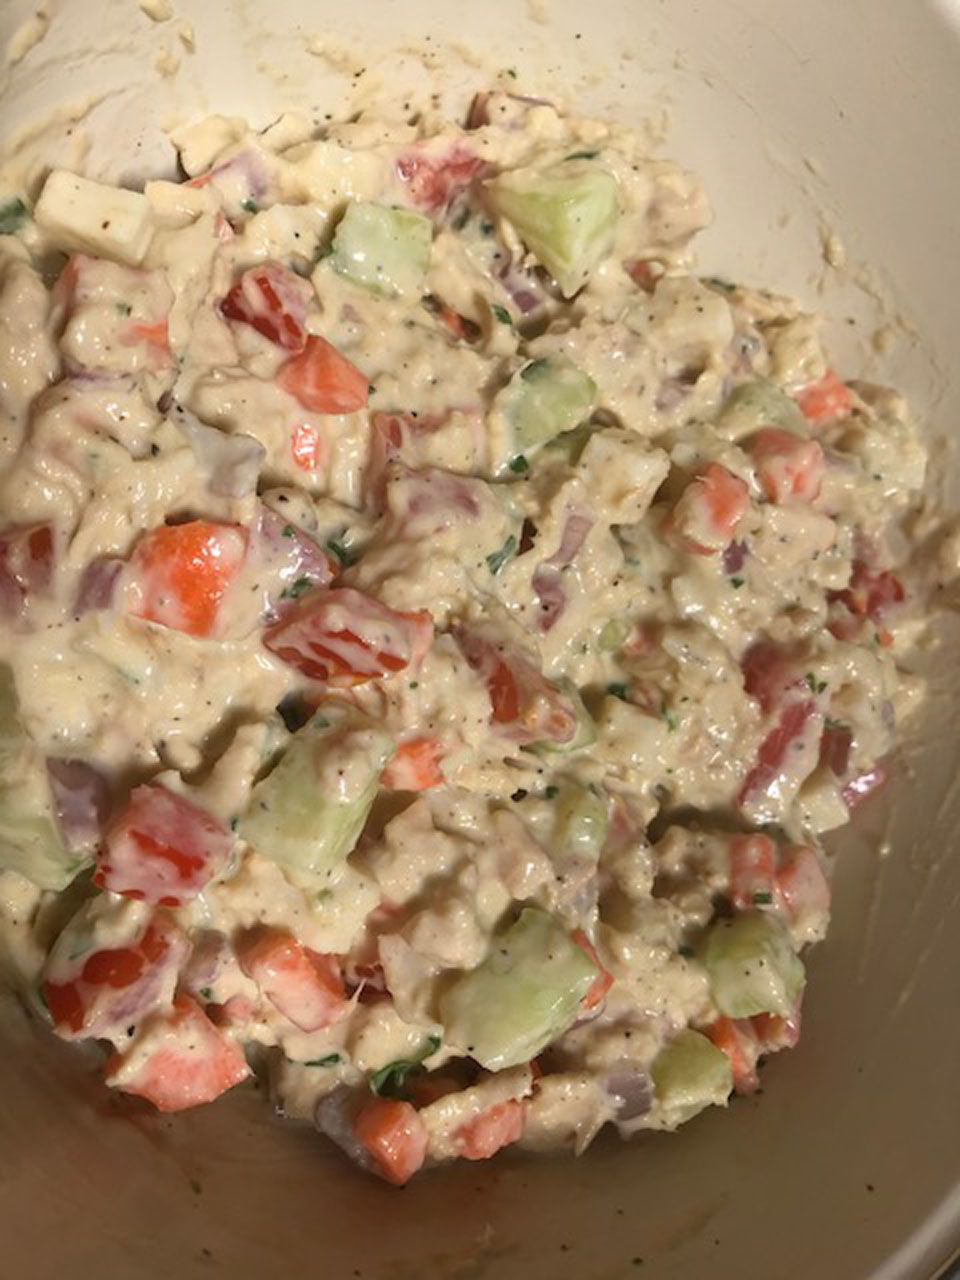 Stacy's Crunchy Tuna Salad djspartacus